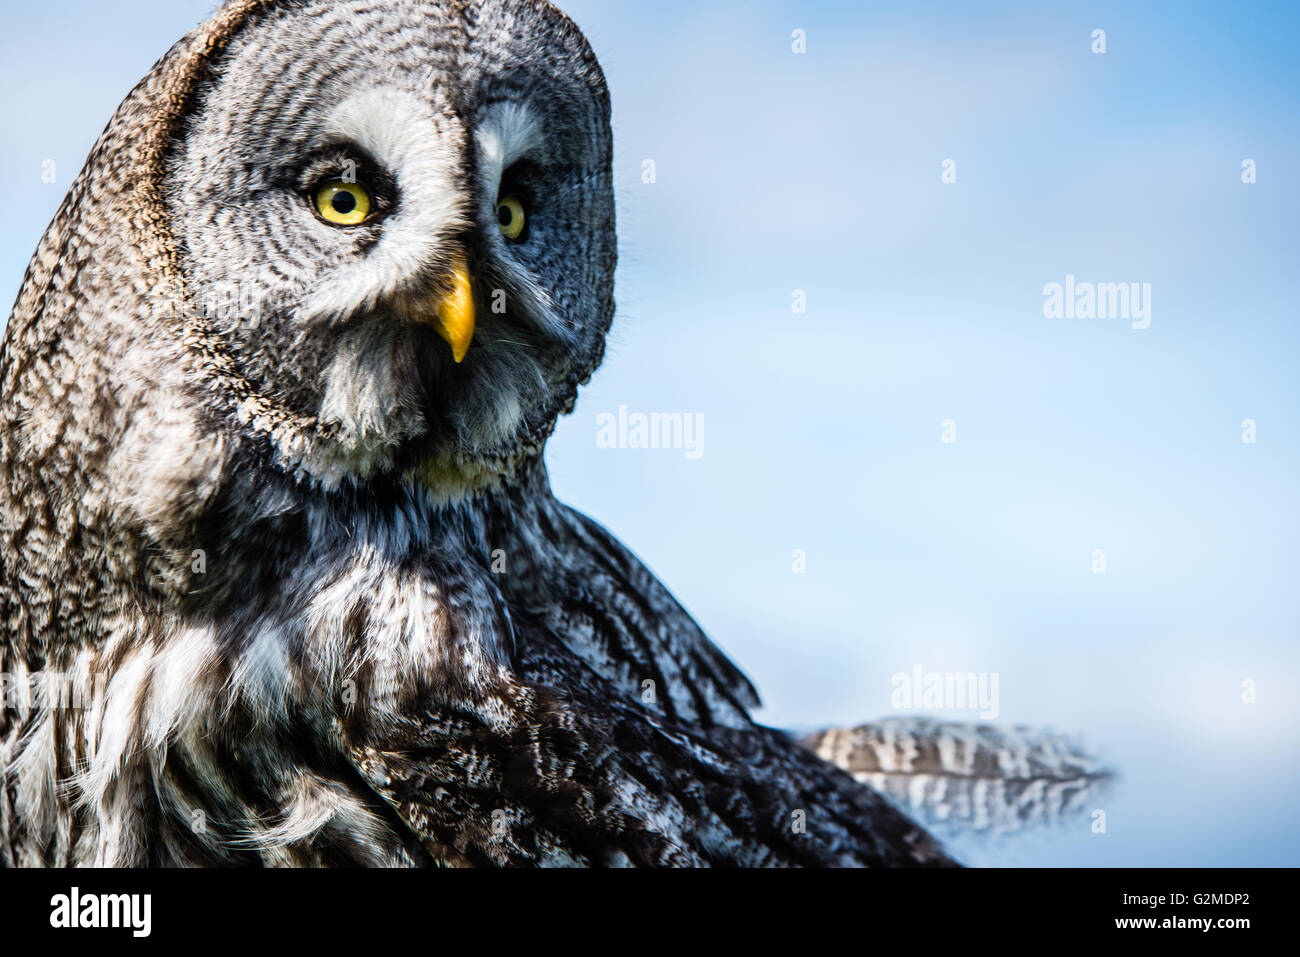 Great Grey Owl at The Welsh Mountain Zoo, Colwyn Bay, Wales. - Stock Image